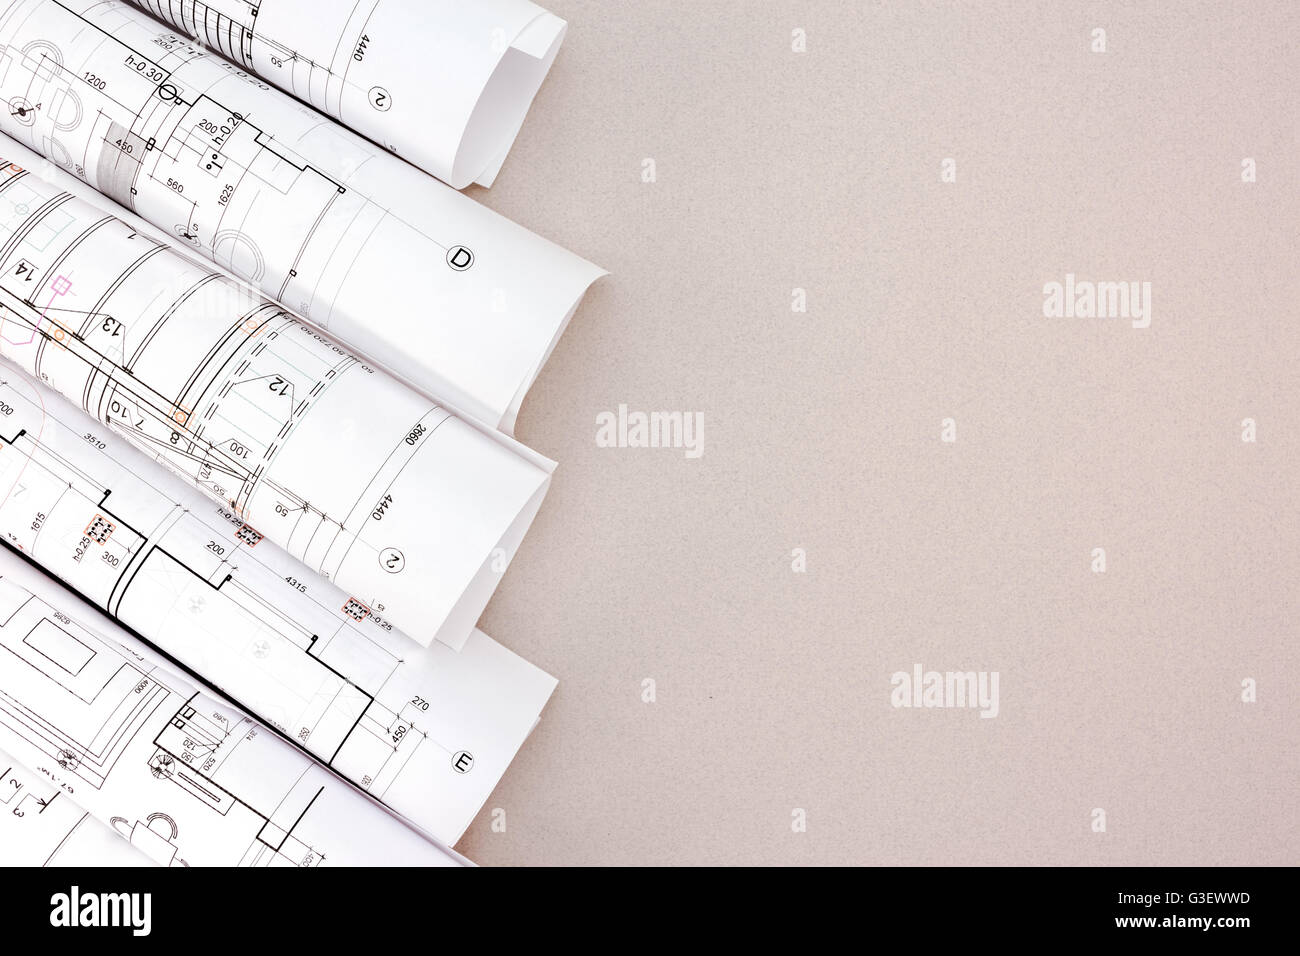 Architect workspace with rolls of blueprints and house plans top architect workspace with rolls of blueprints and house plans top view malvernweather Images